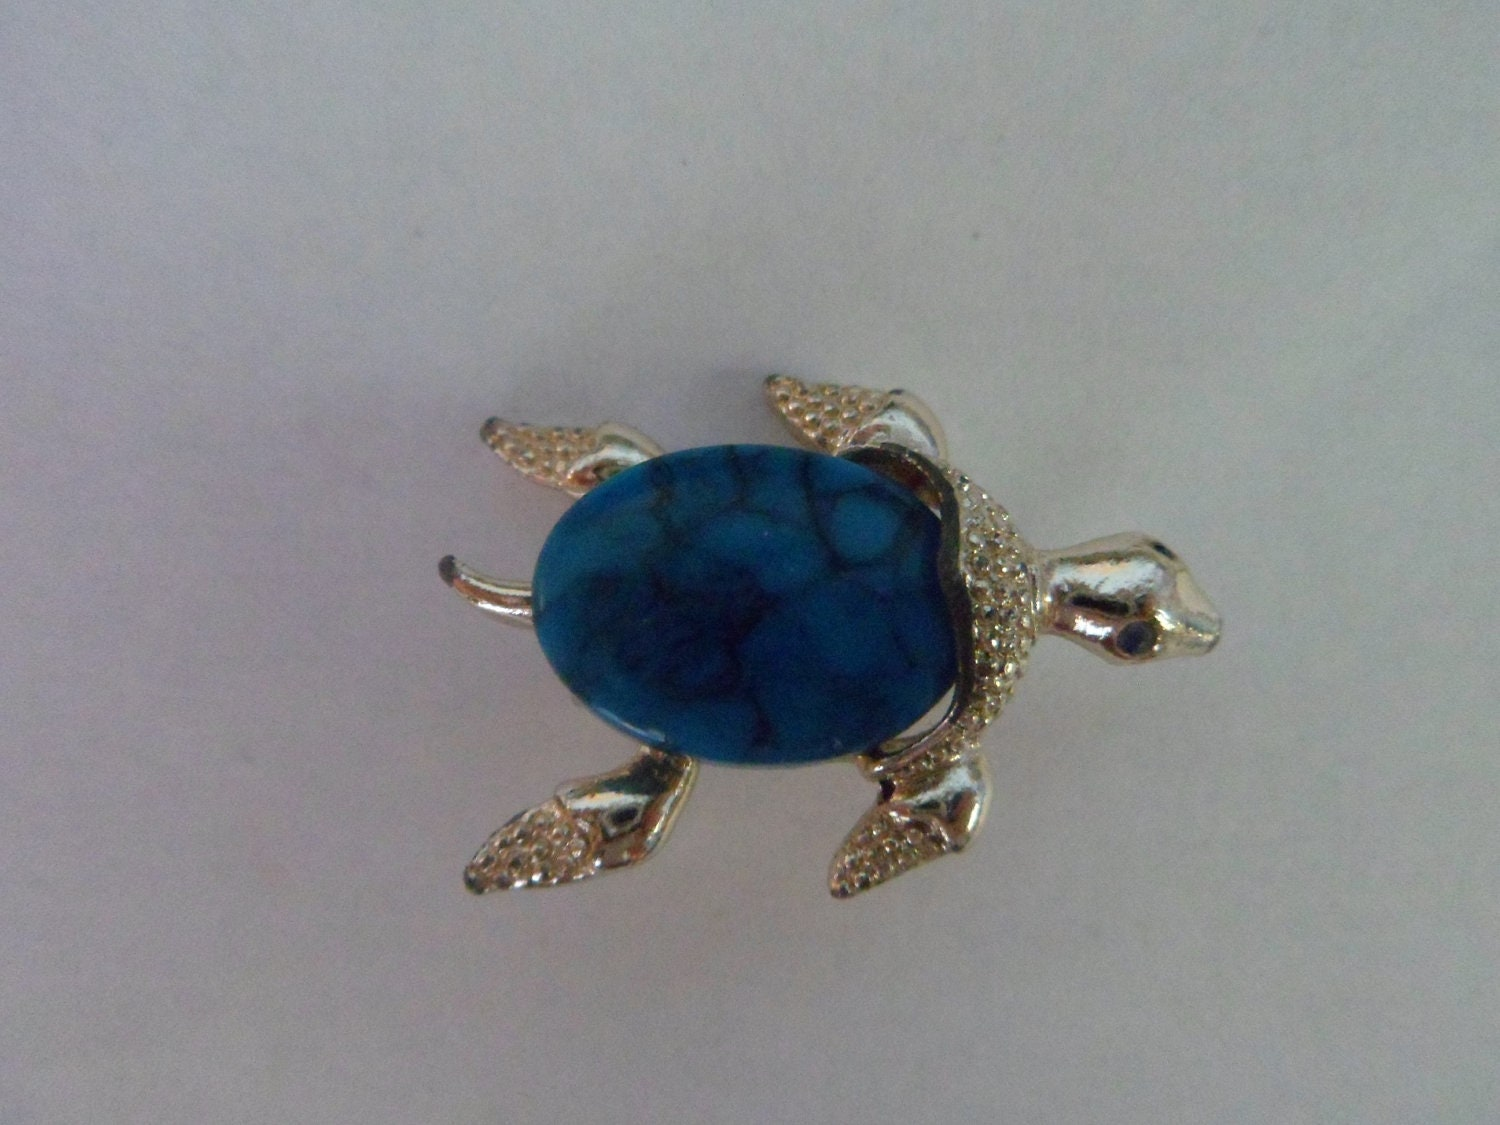 Vintage Silvertone Gerrys Turtle Brooch with Turquoise Stone